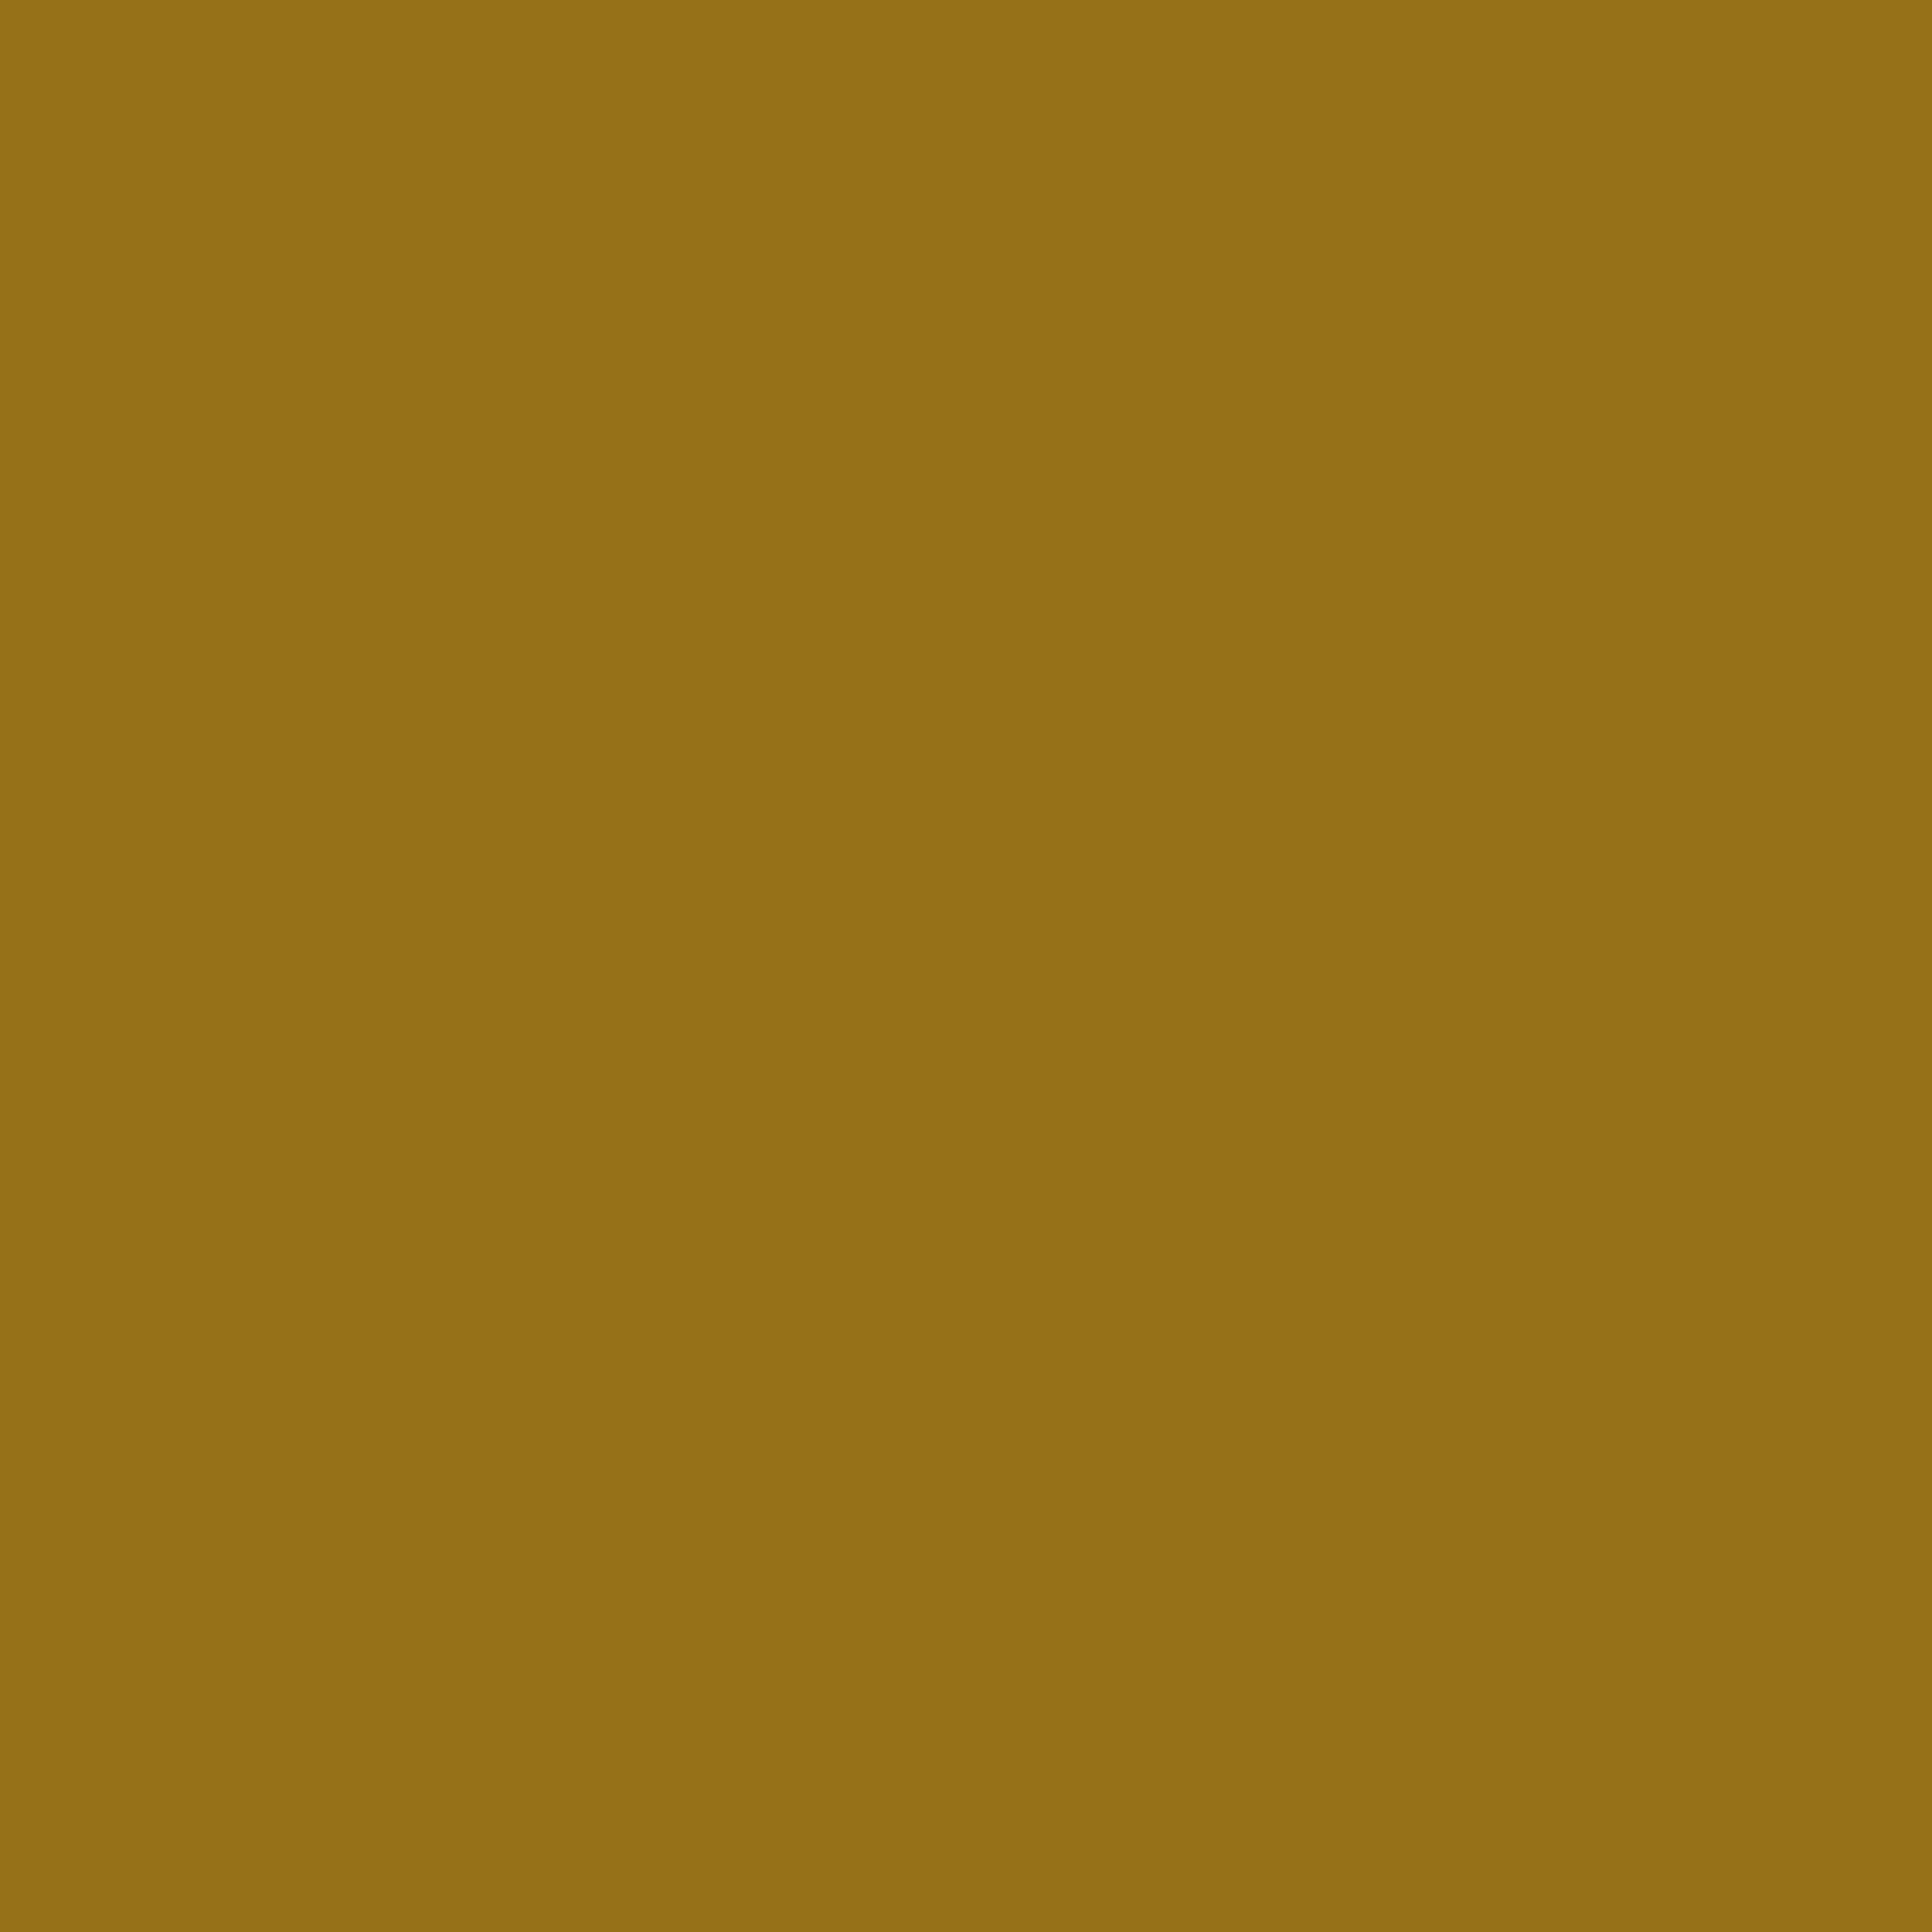 2732x2732 Sandy Taupe Solid Color Background